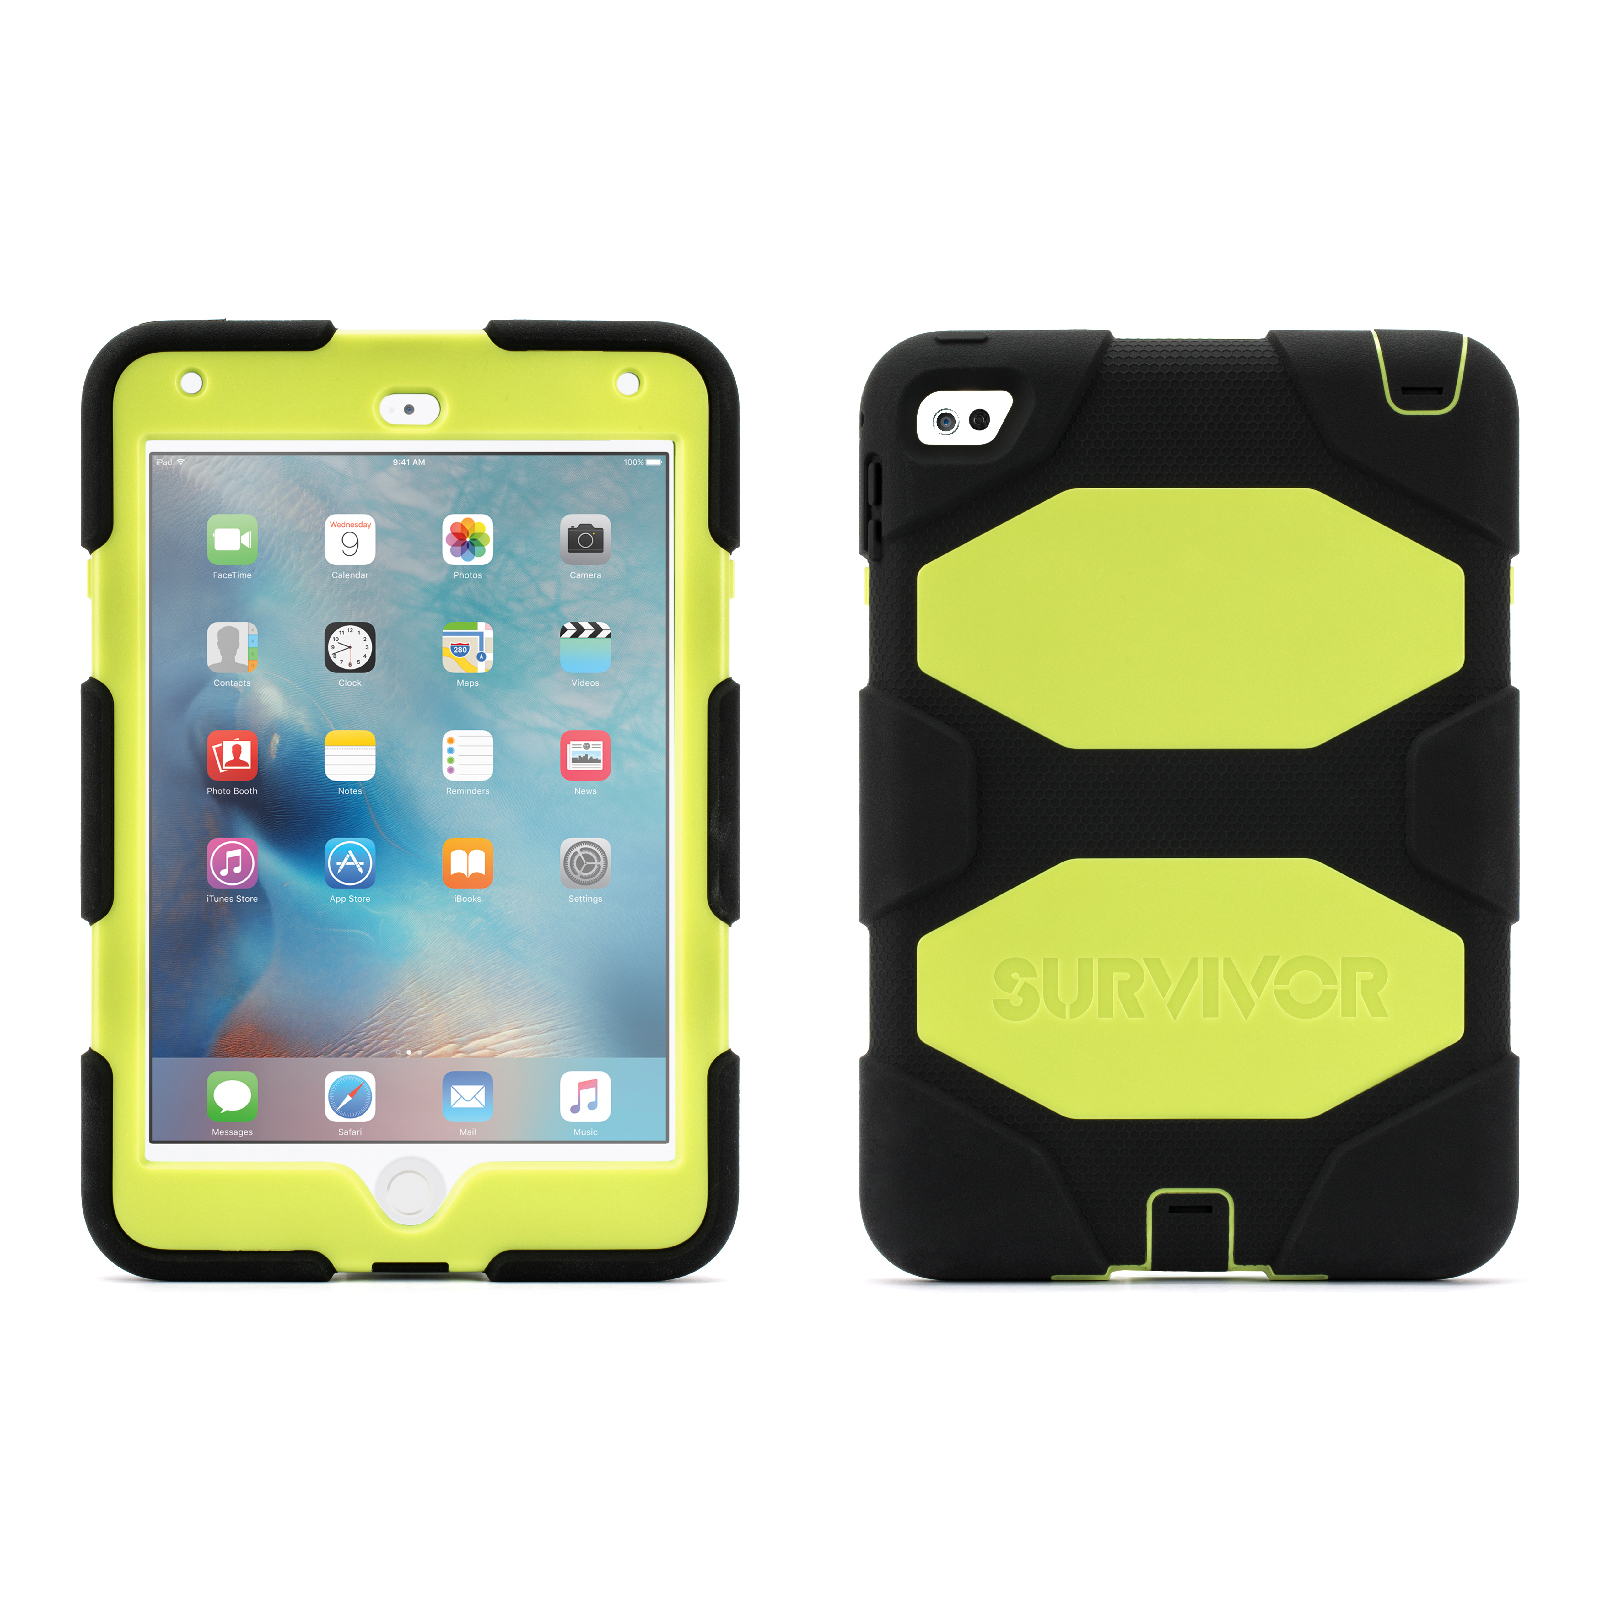 Griffin Griffin iPad mini 4 Rugged Case, Survivor All-Terrain Protective Case + Stand, Mil-spec tested, real-world proven protection